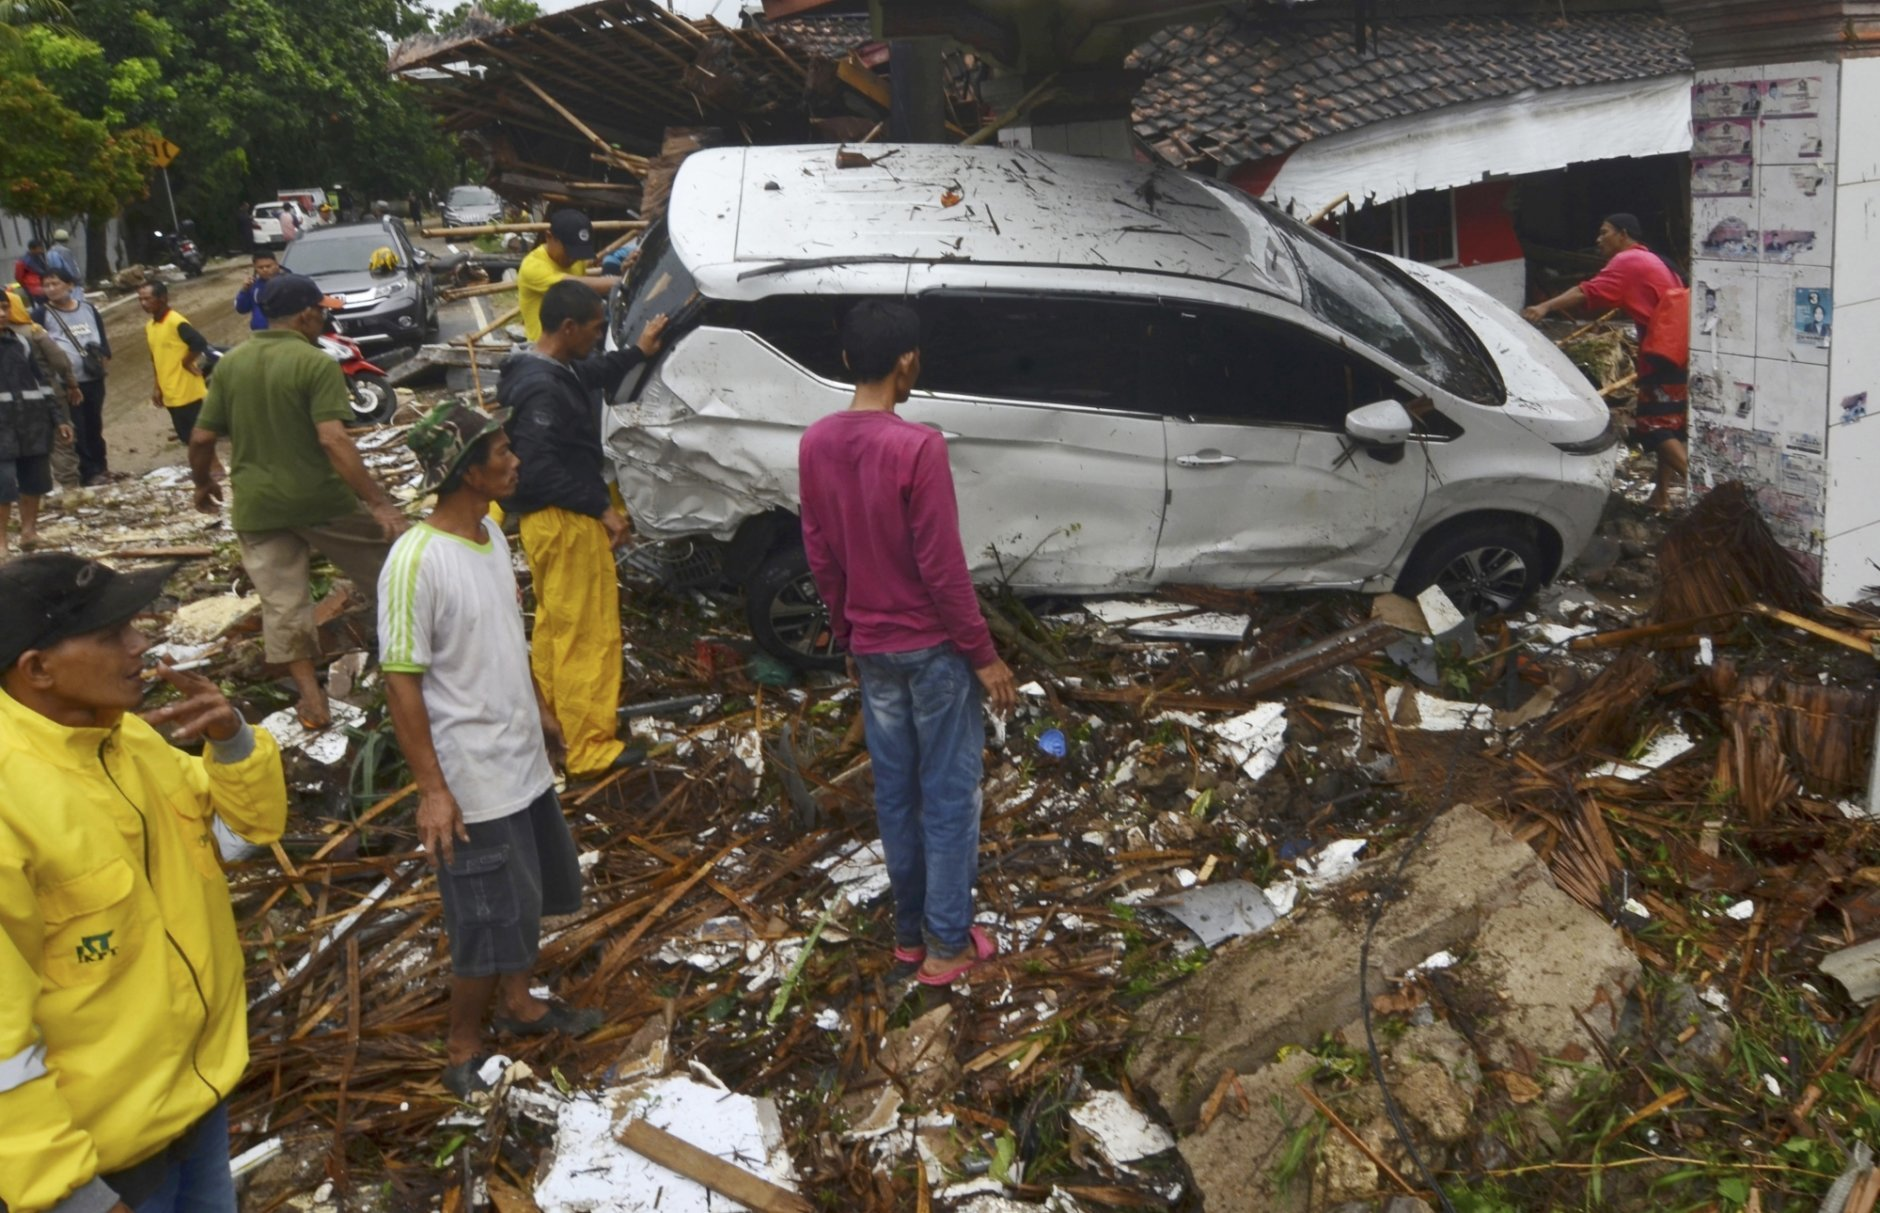 In this Sunday, Dec. 23, 2018, photo, people inspect the wreckage of a car swept away by a tsunami in Carita, Indonesia. The tsunami that hit the coasts of Indonesian islands along the Sunda Strait was not big but it was destructive. The waves smashed onto beaches in the darkness Saturday night without warning, ripping houses and hotels from their foundations in seconds and sweeping terrified concertgoers into the sea. (AP Photo)